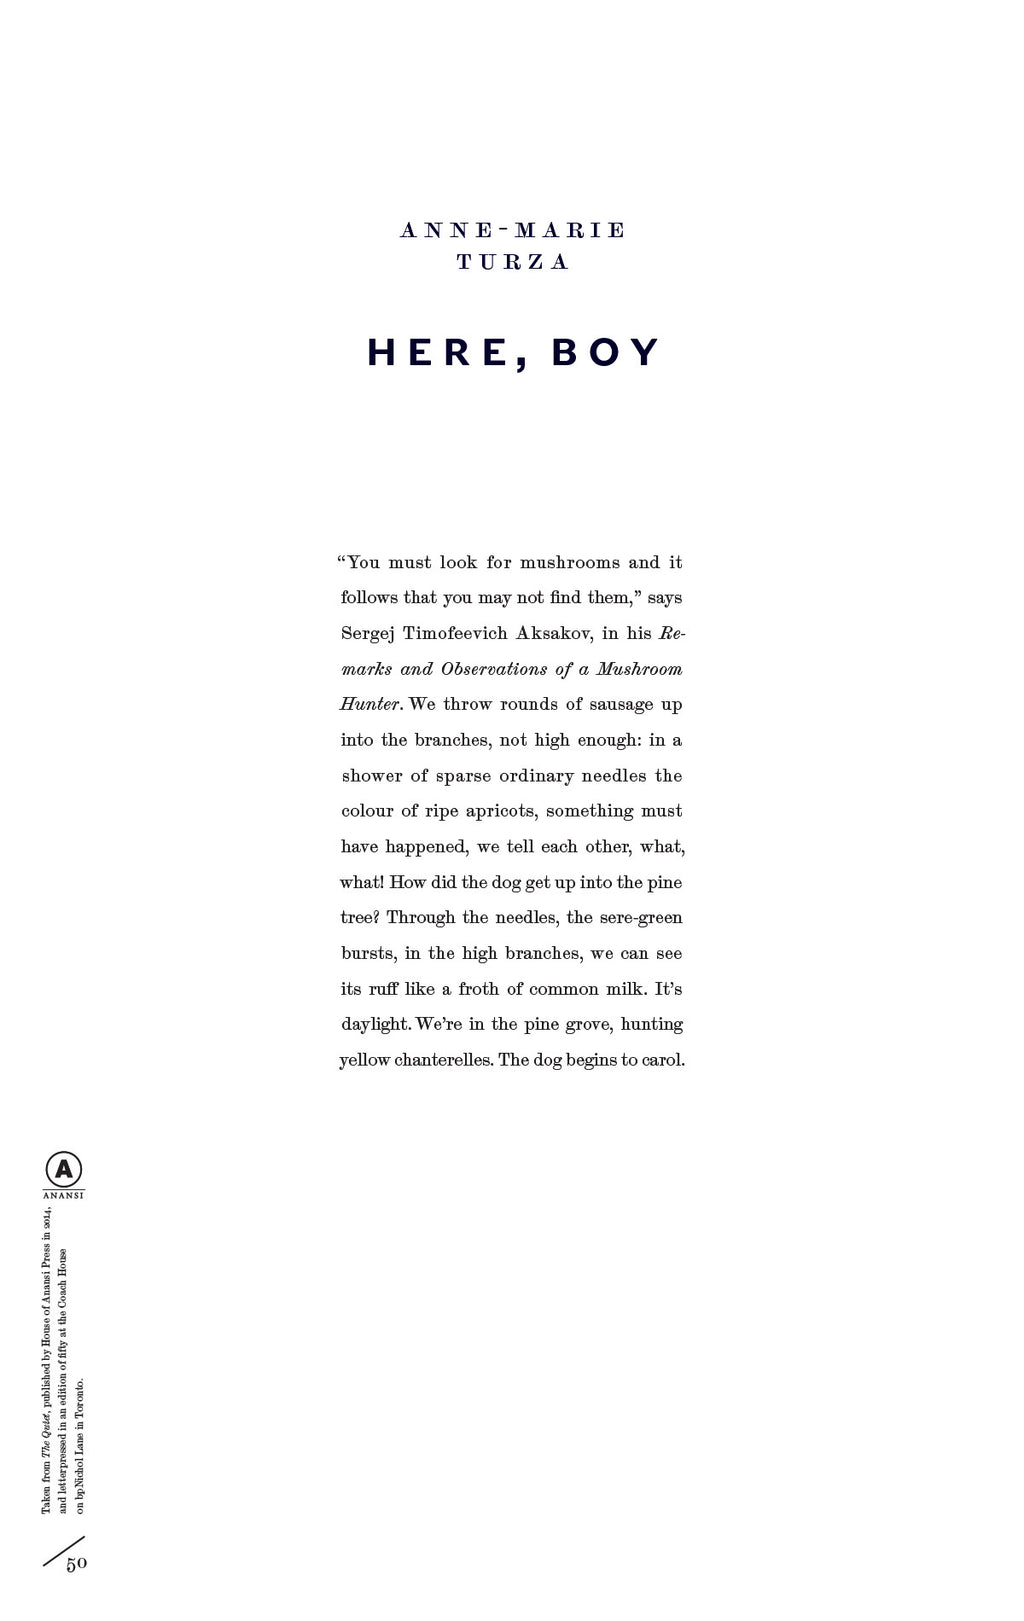 Here, Boy by Anne-Marie Turza